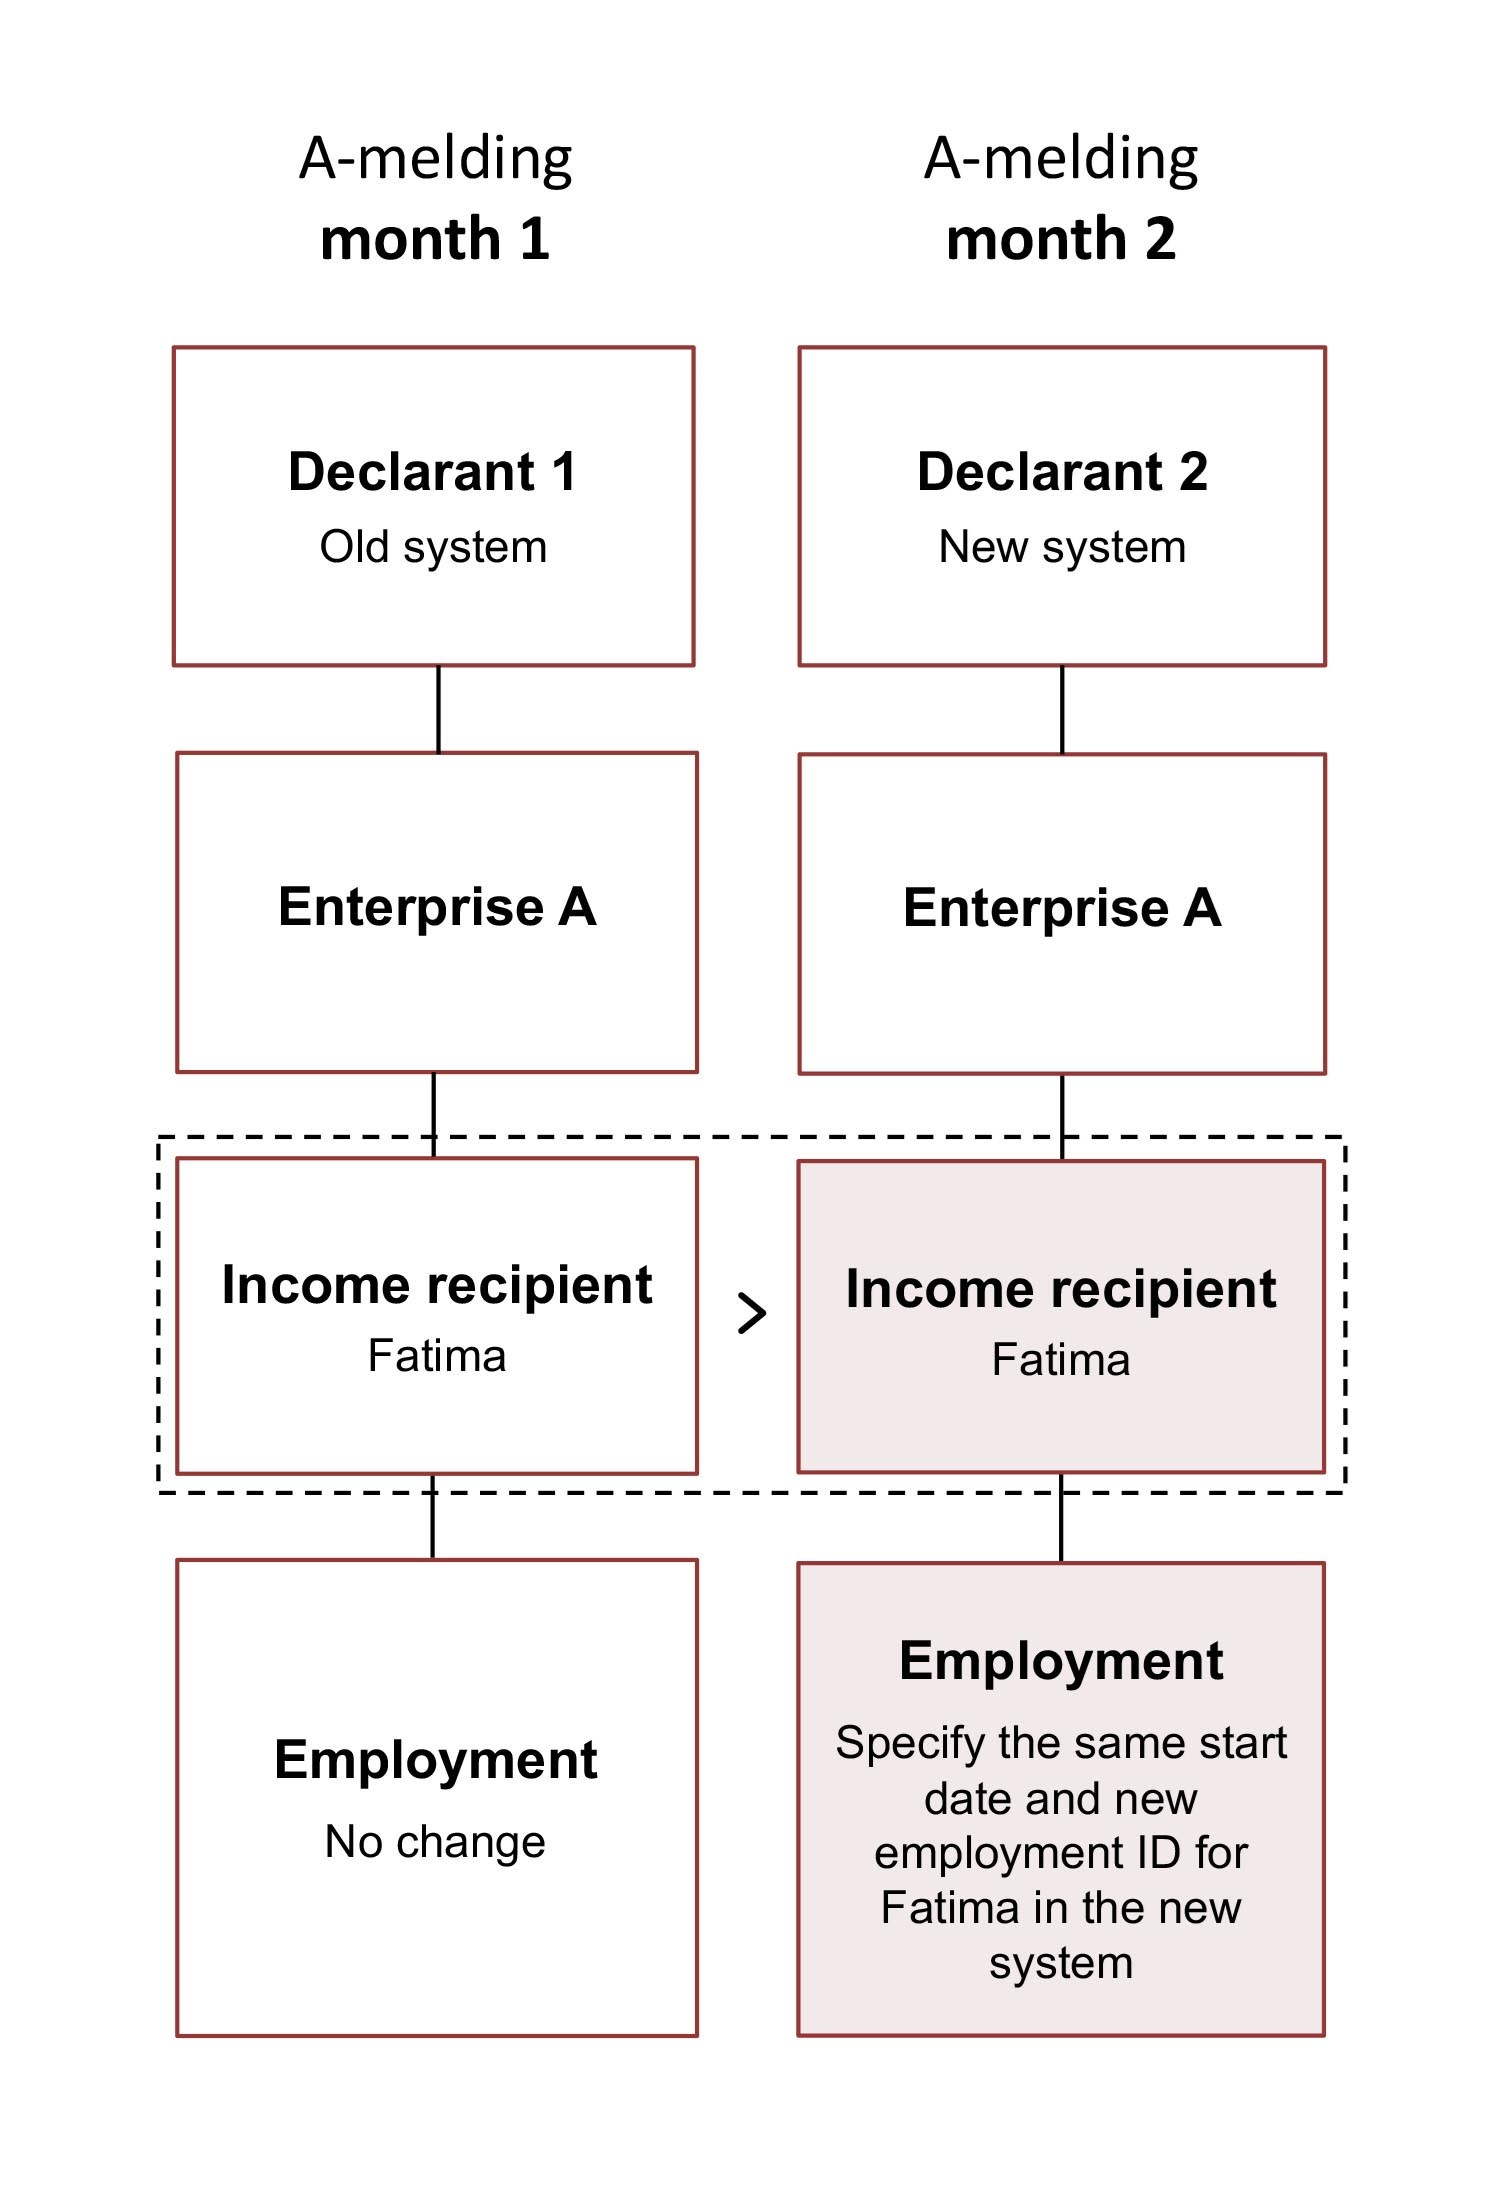 Diagram. No change in Fatima's employment information in the old system. Specify the new employment with the same start date and new employment ID for Fatima in the new system. The text in the article explains this in more detail.